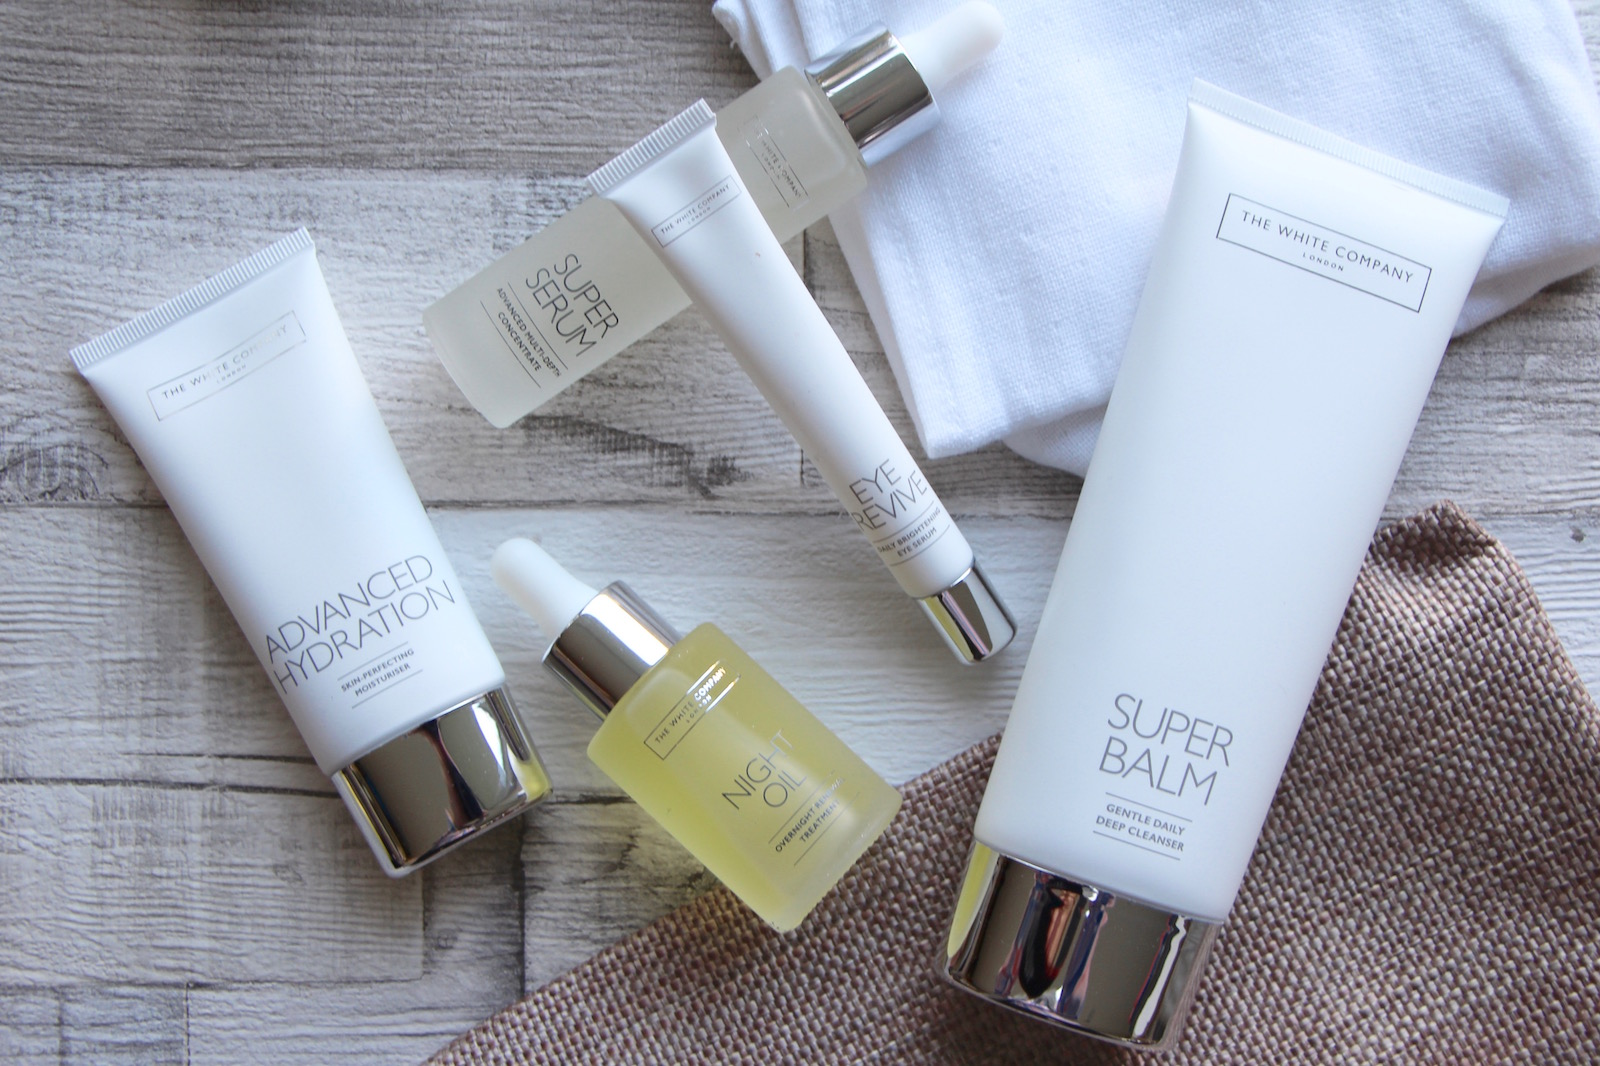 white company x deciem skincare review